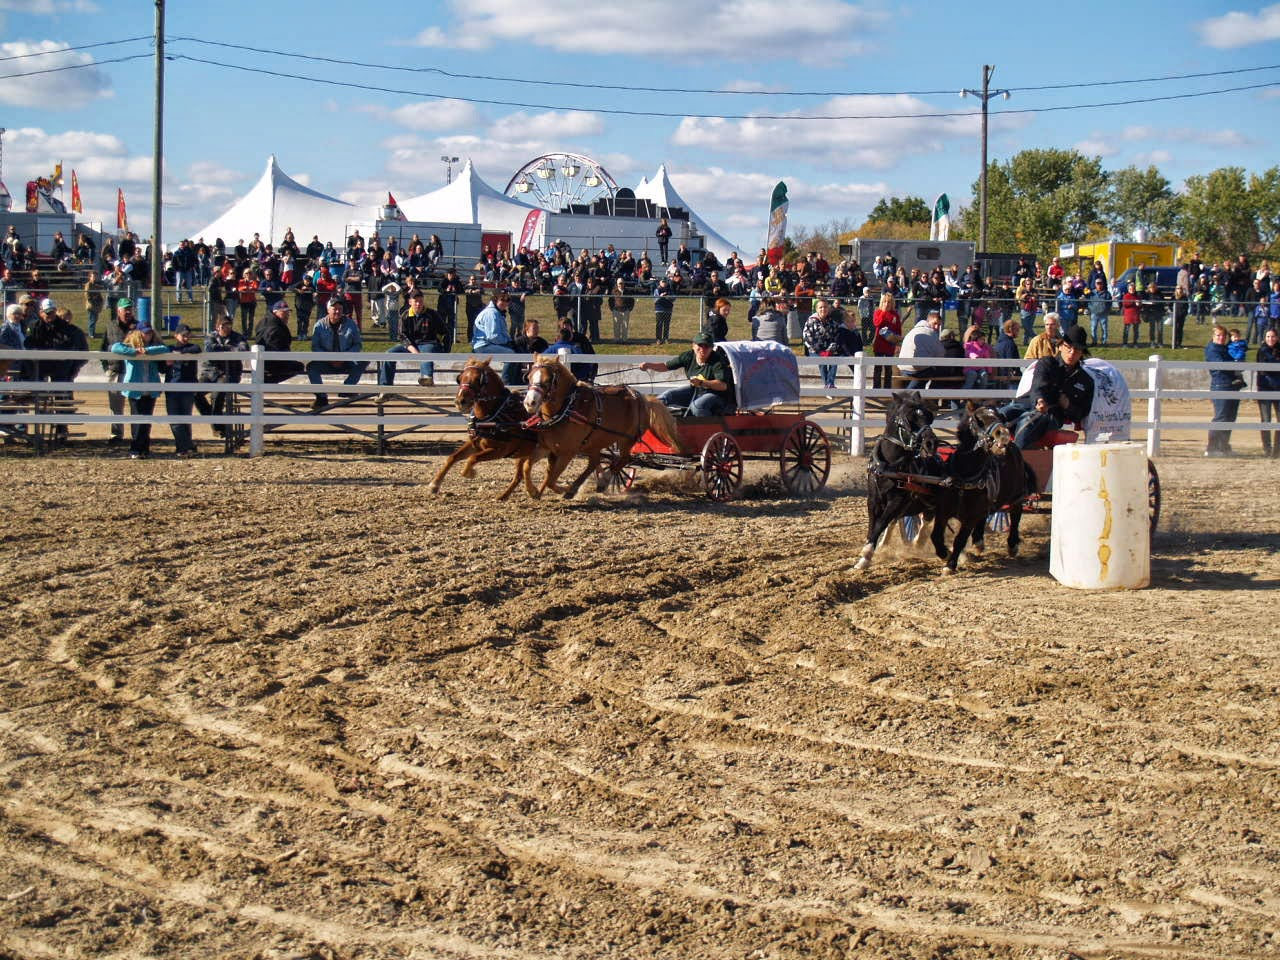 Chuck Wagon Championships, Chuckwagon Race, Cowboys, Horse Race, Miniature Horses, Oklahoma, Race, Sports, World Miniature Championships,